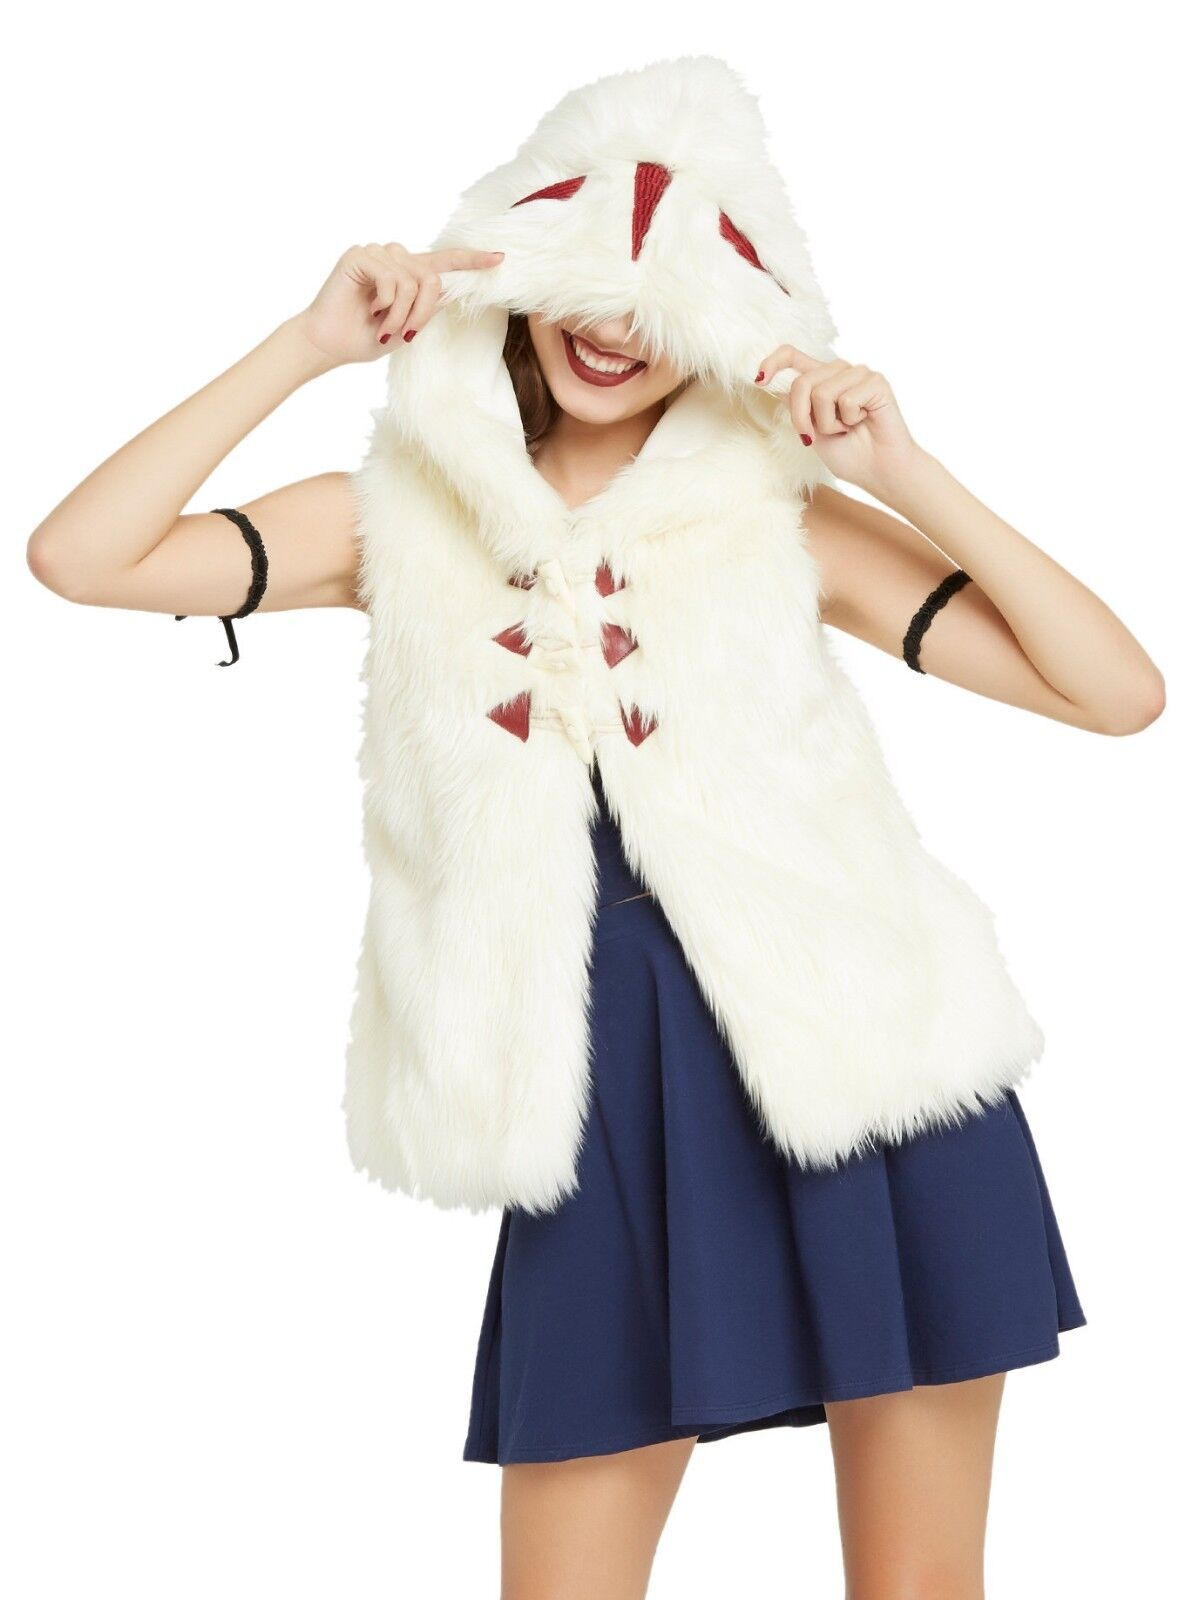 Studio Ghibli Princess Mononoke Fur Vest Cosplay Anime M L XL New Her Universe